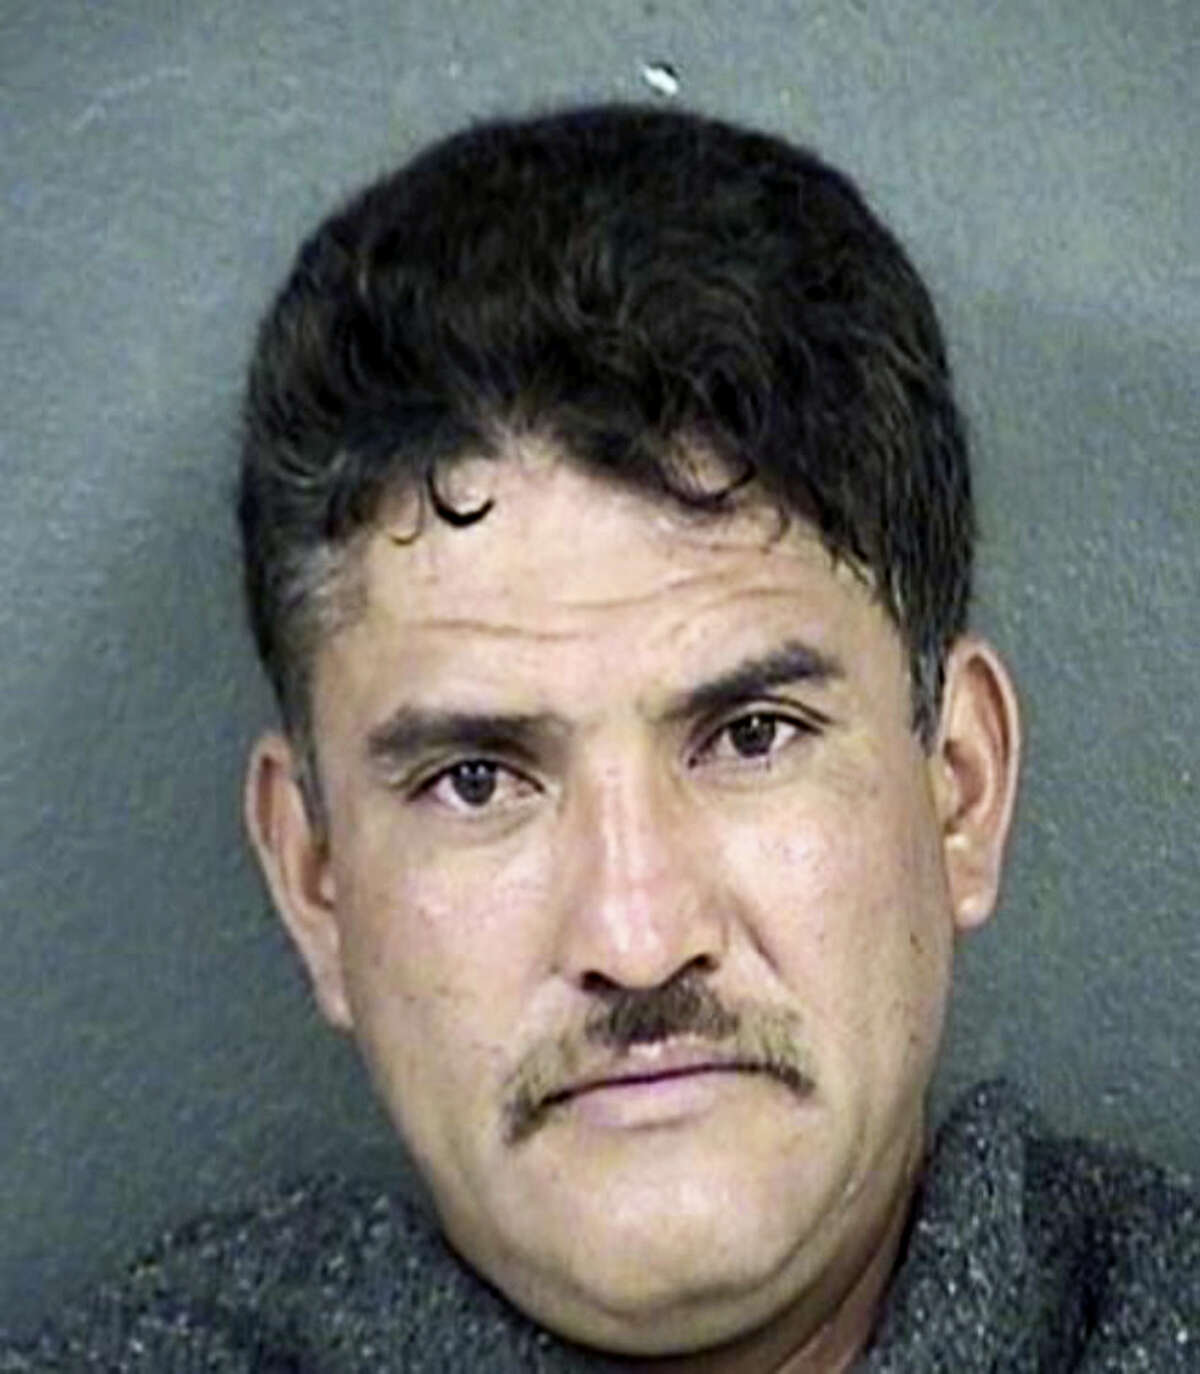 This undated photo provided by the Kansas City, Kan. Police Department on Tuesday, March 8, 2016, shows Pablo Serrano. Serrano is suspected of fatally shooting four people at his neighbor's home in Kansas before killing another man about 170 miles away in a rural Missouri house not far from where his truck was found abandoned.